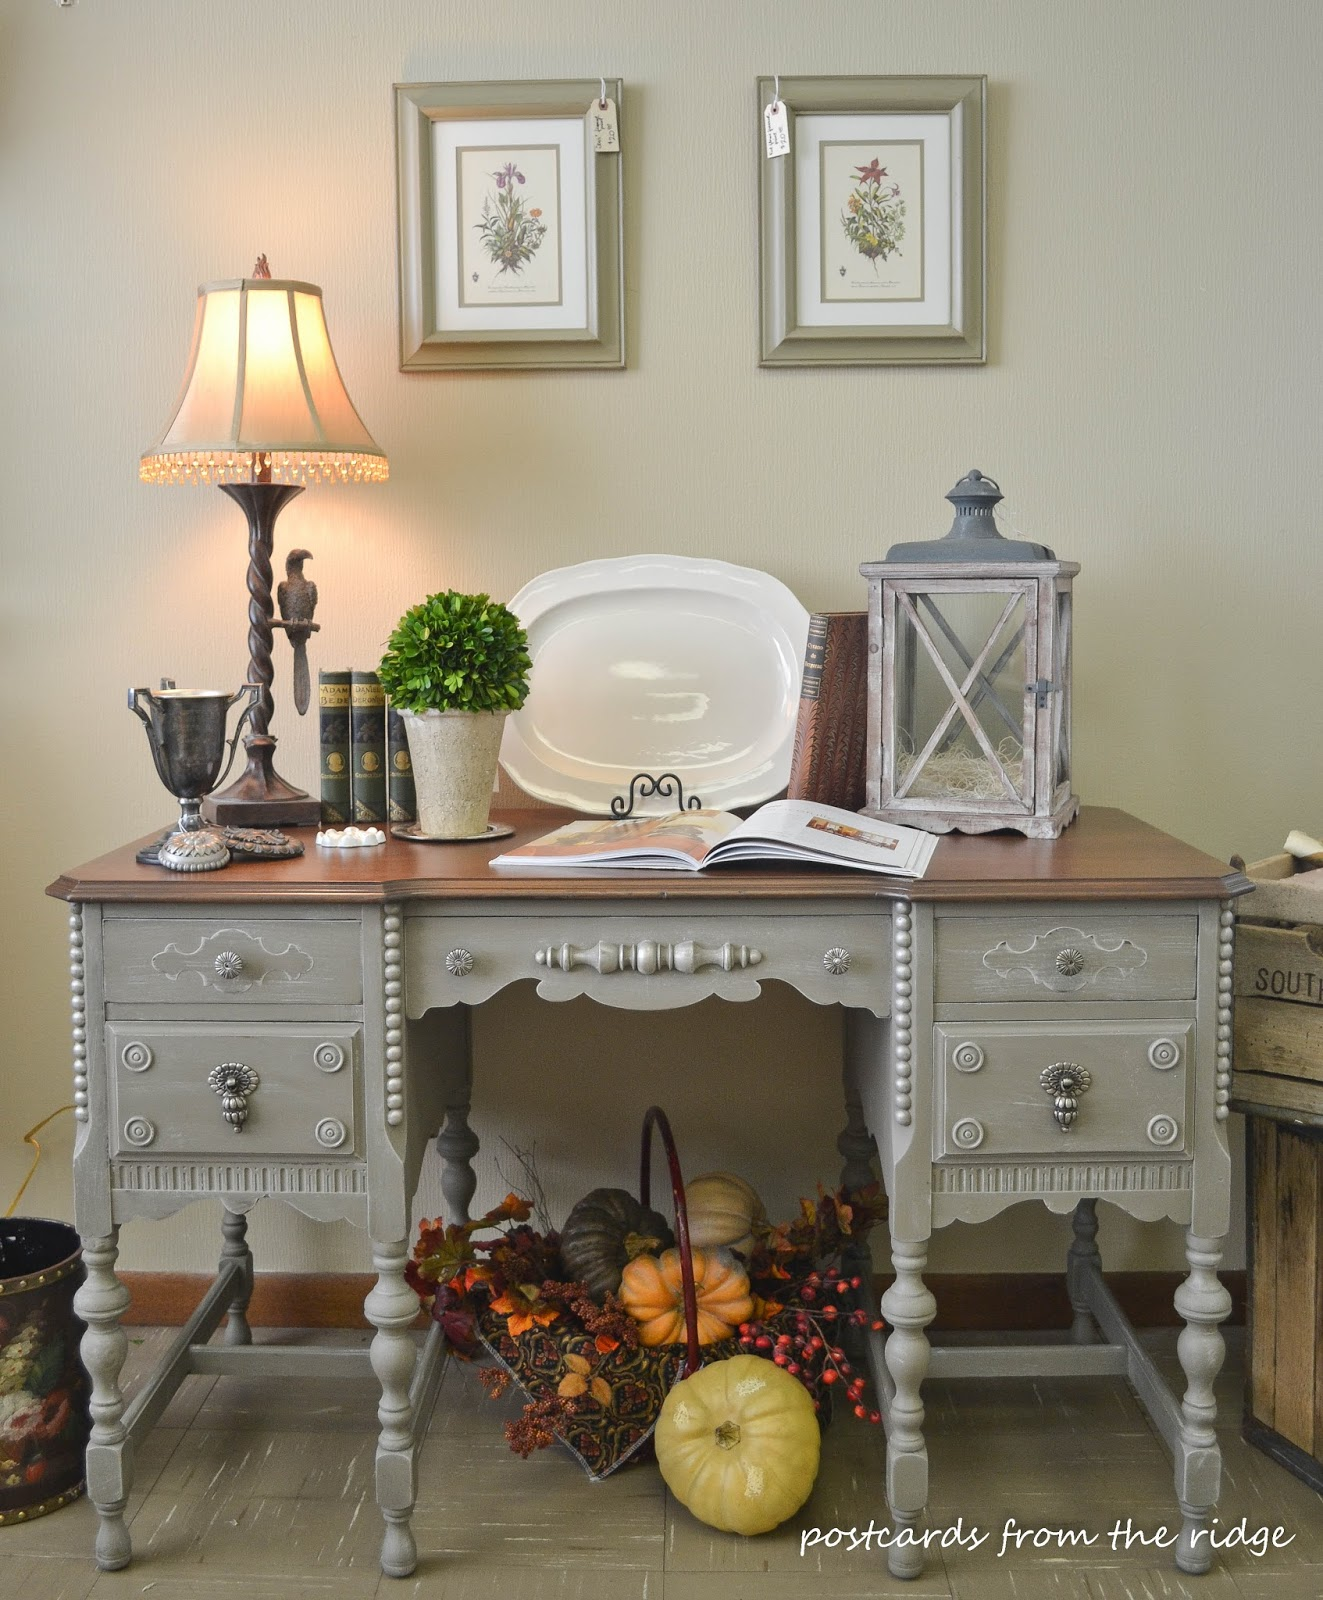 how to refinish wood chairs serta perfect lift chair reviews furniture postcards from the ridge